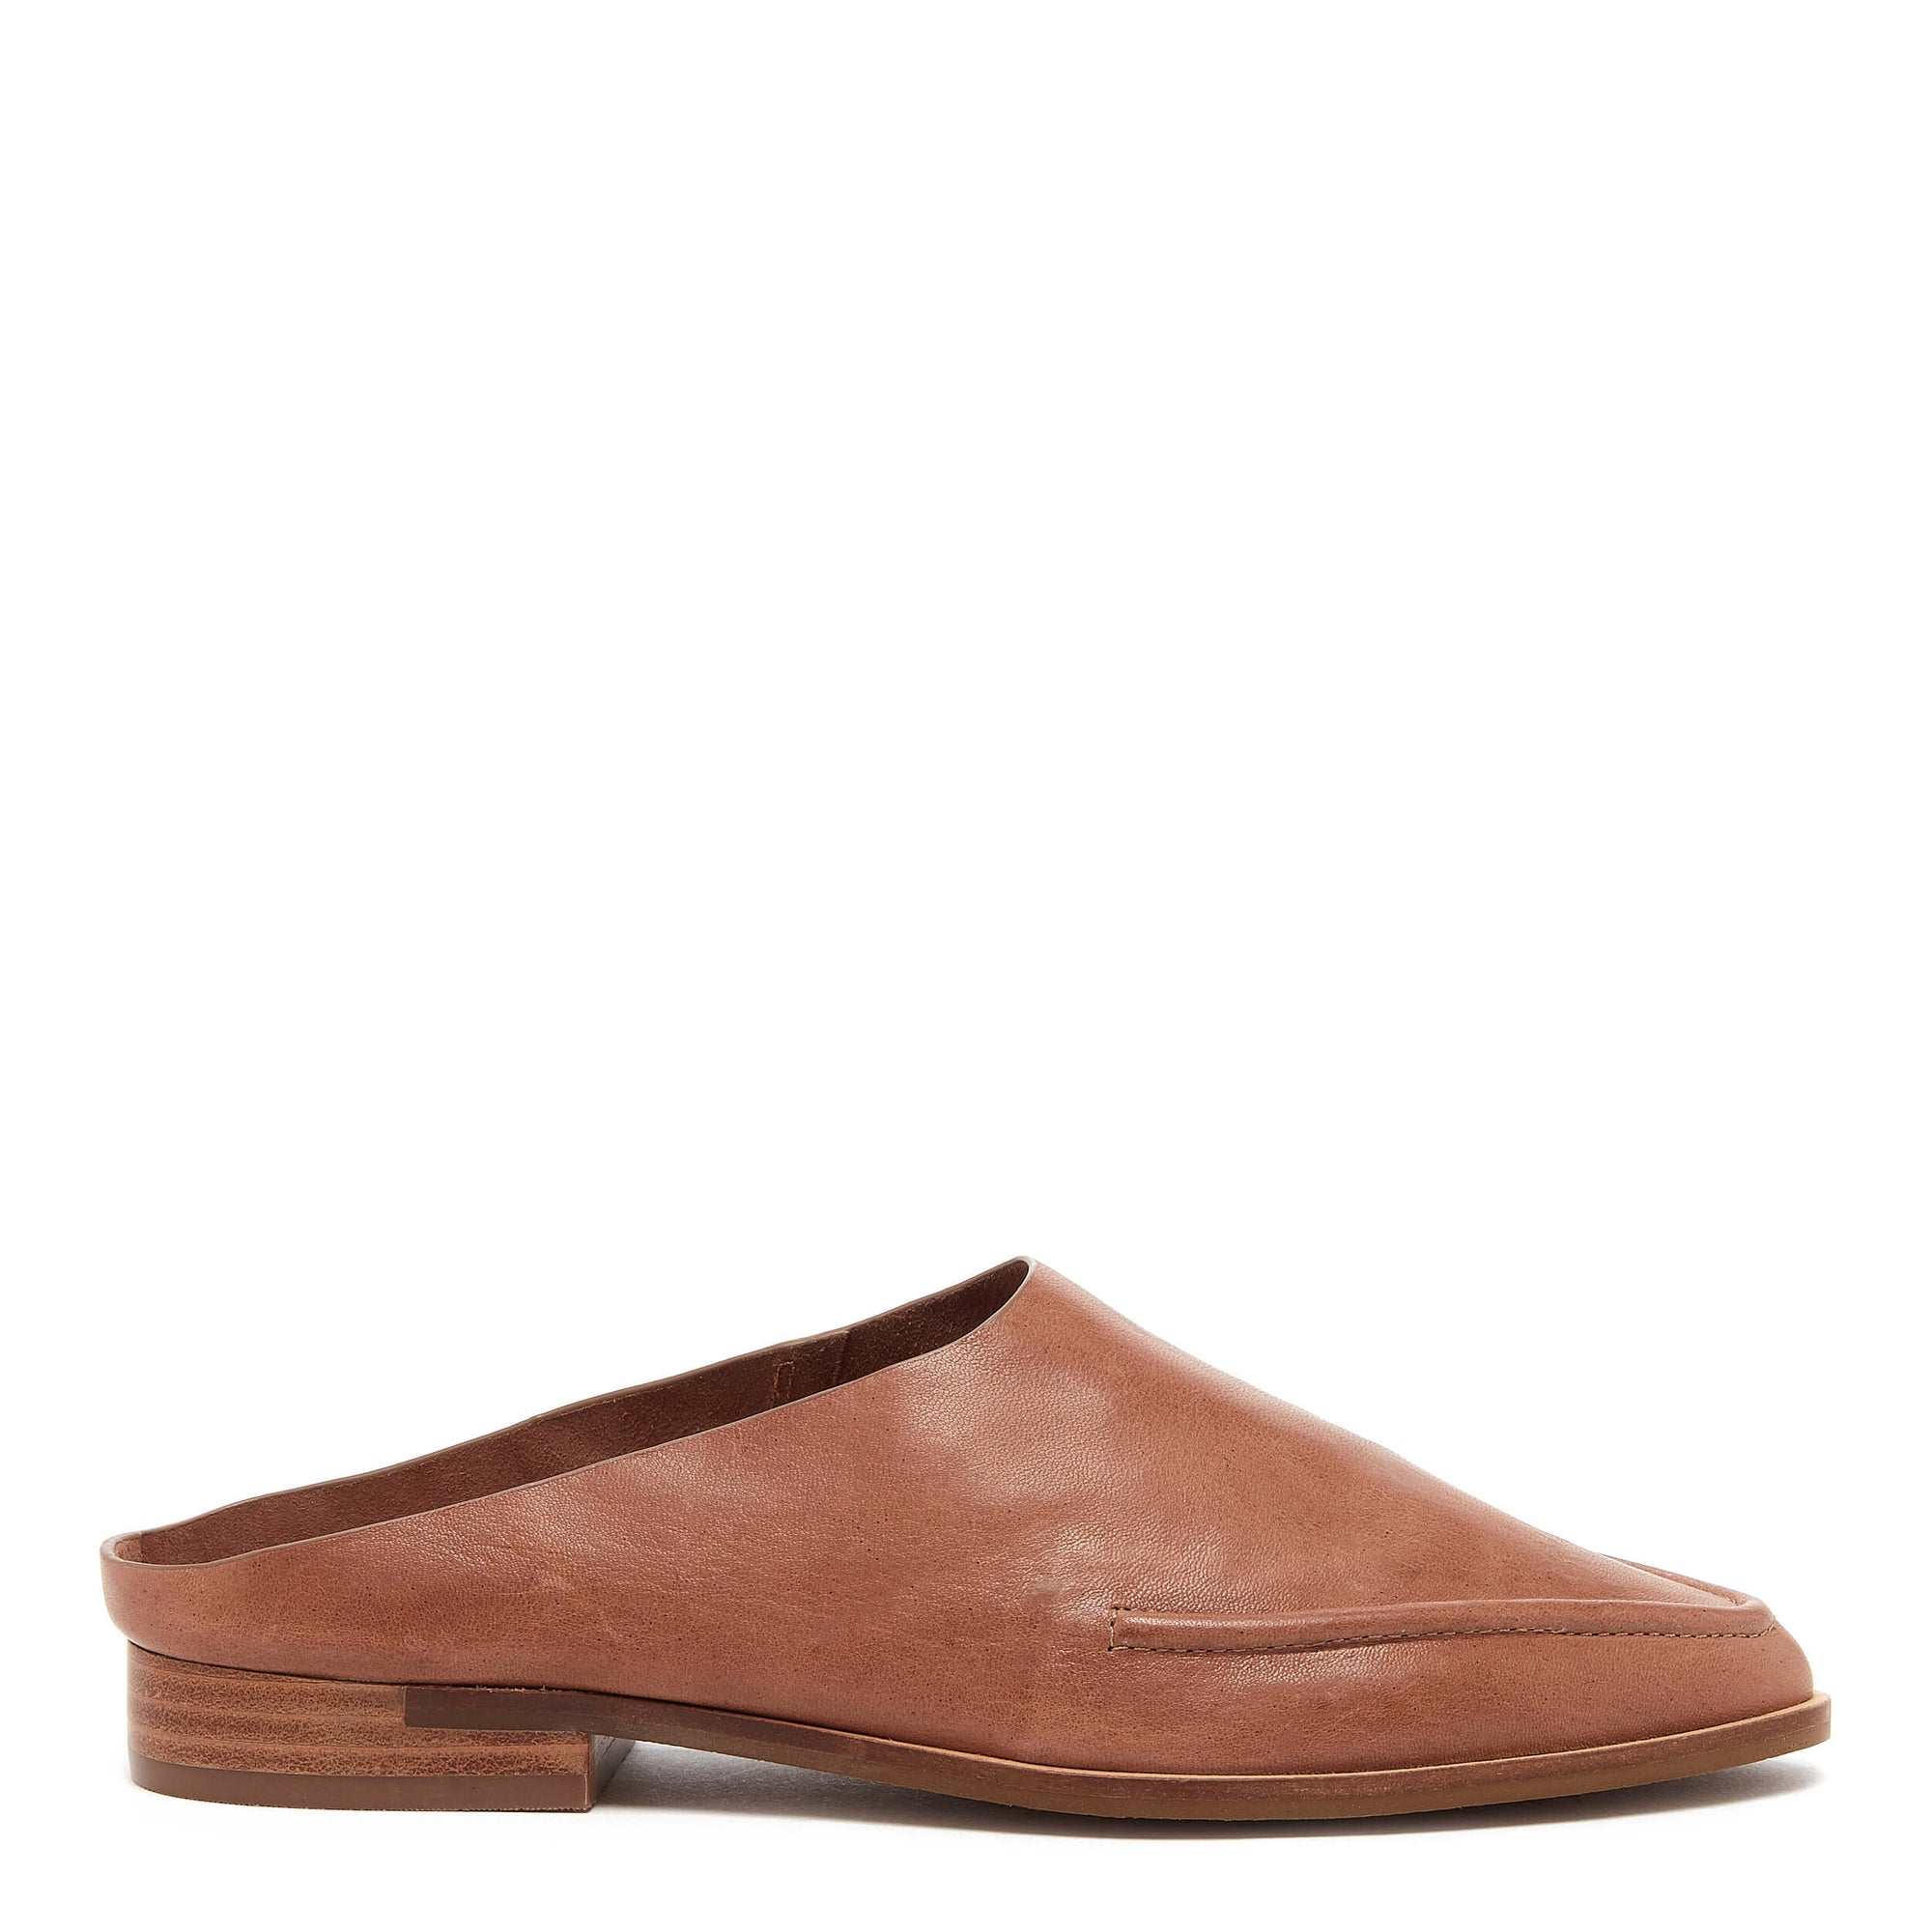 Stillwell Pebble Leather Mule